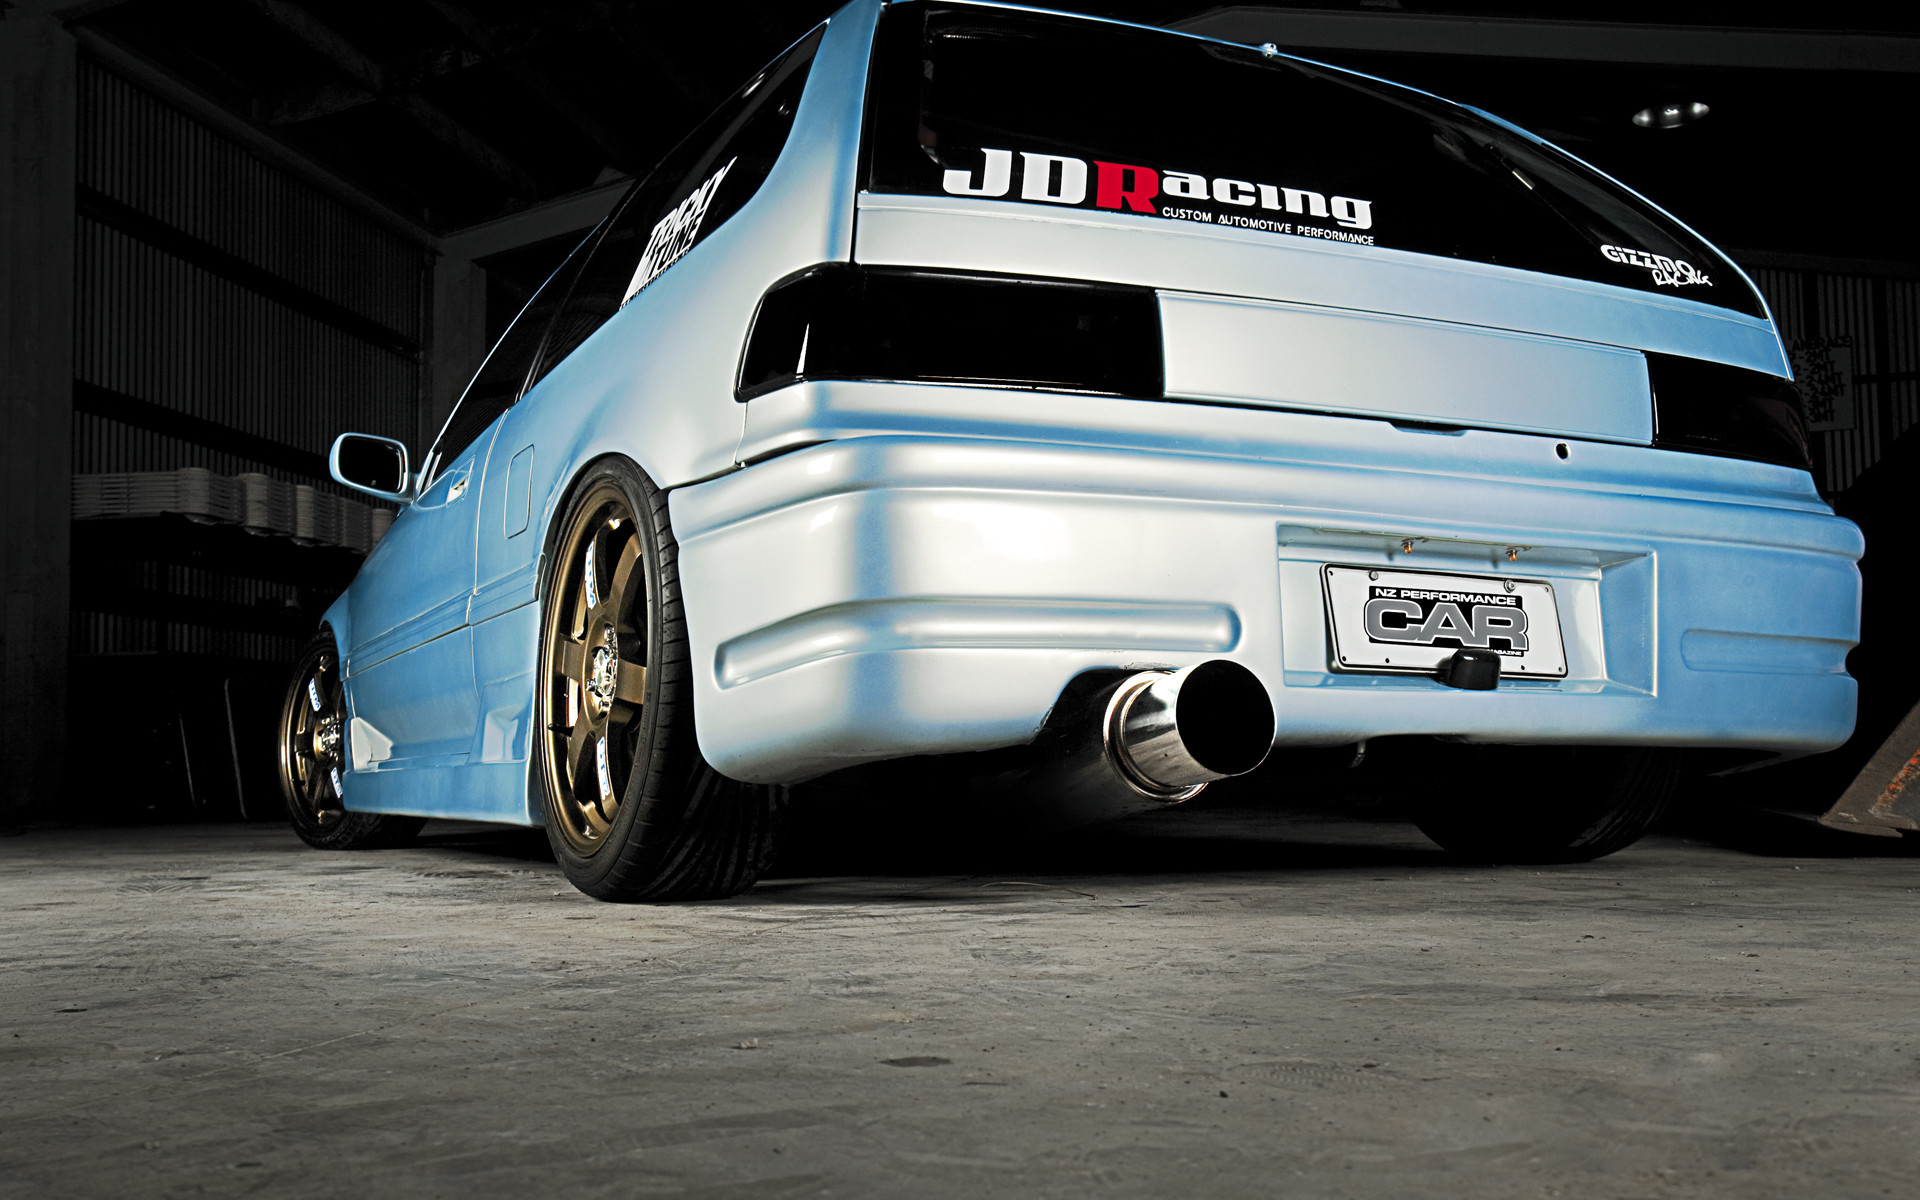 Full Hd Car Wallpapers 2014 Honda Crx Wallpaper 183 ① Wallpapertag